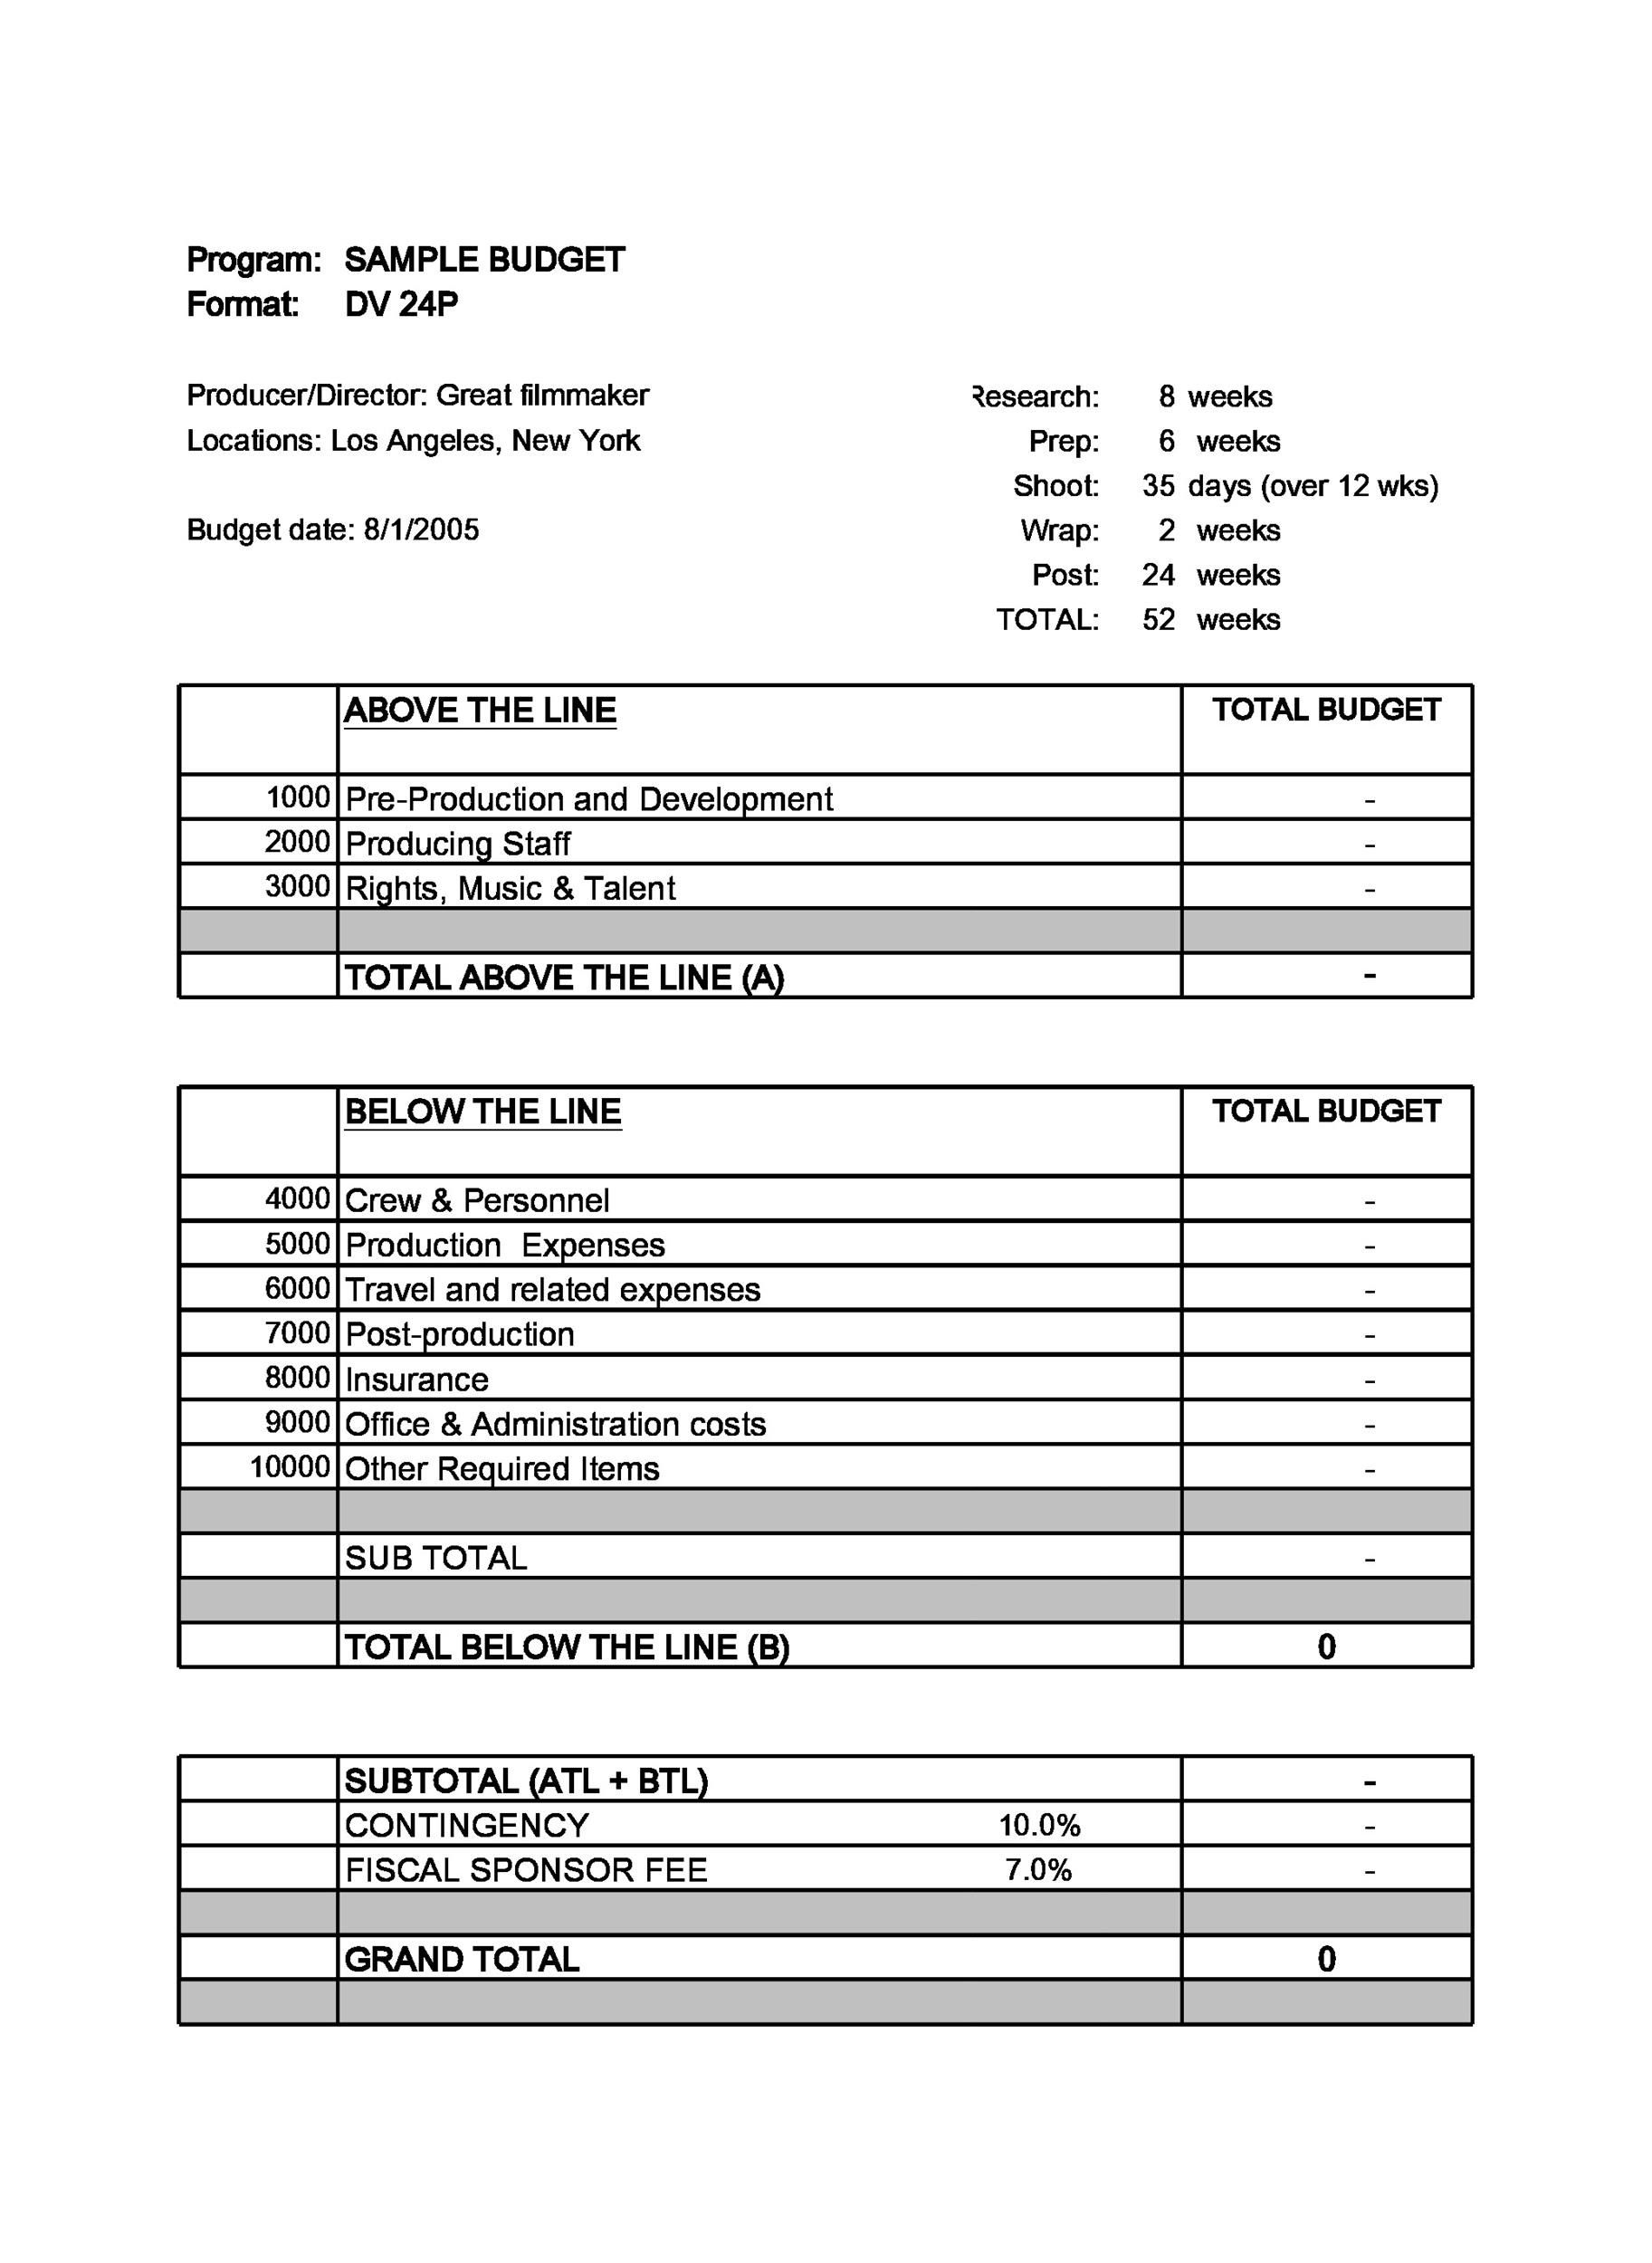 004 Magnificent Line Item Budget Example Image  Format Meaning WithFull